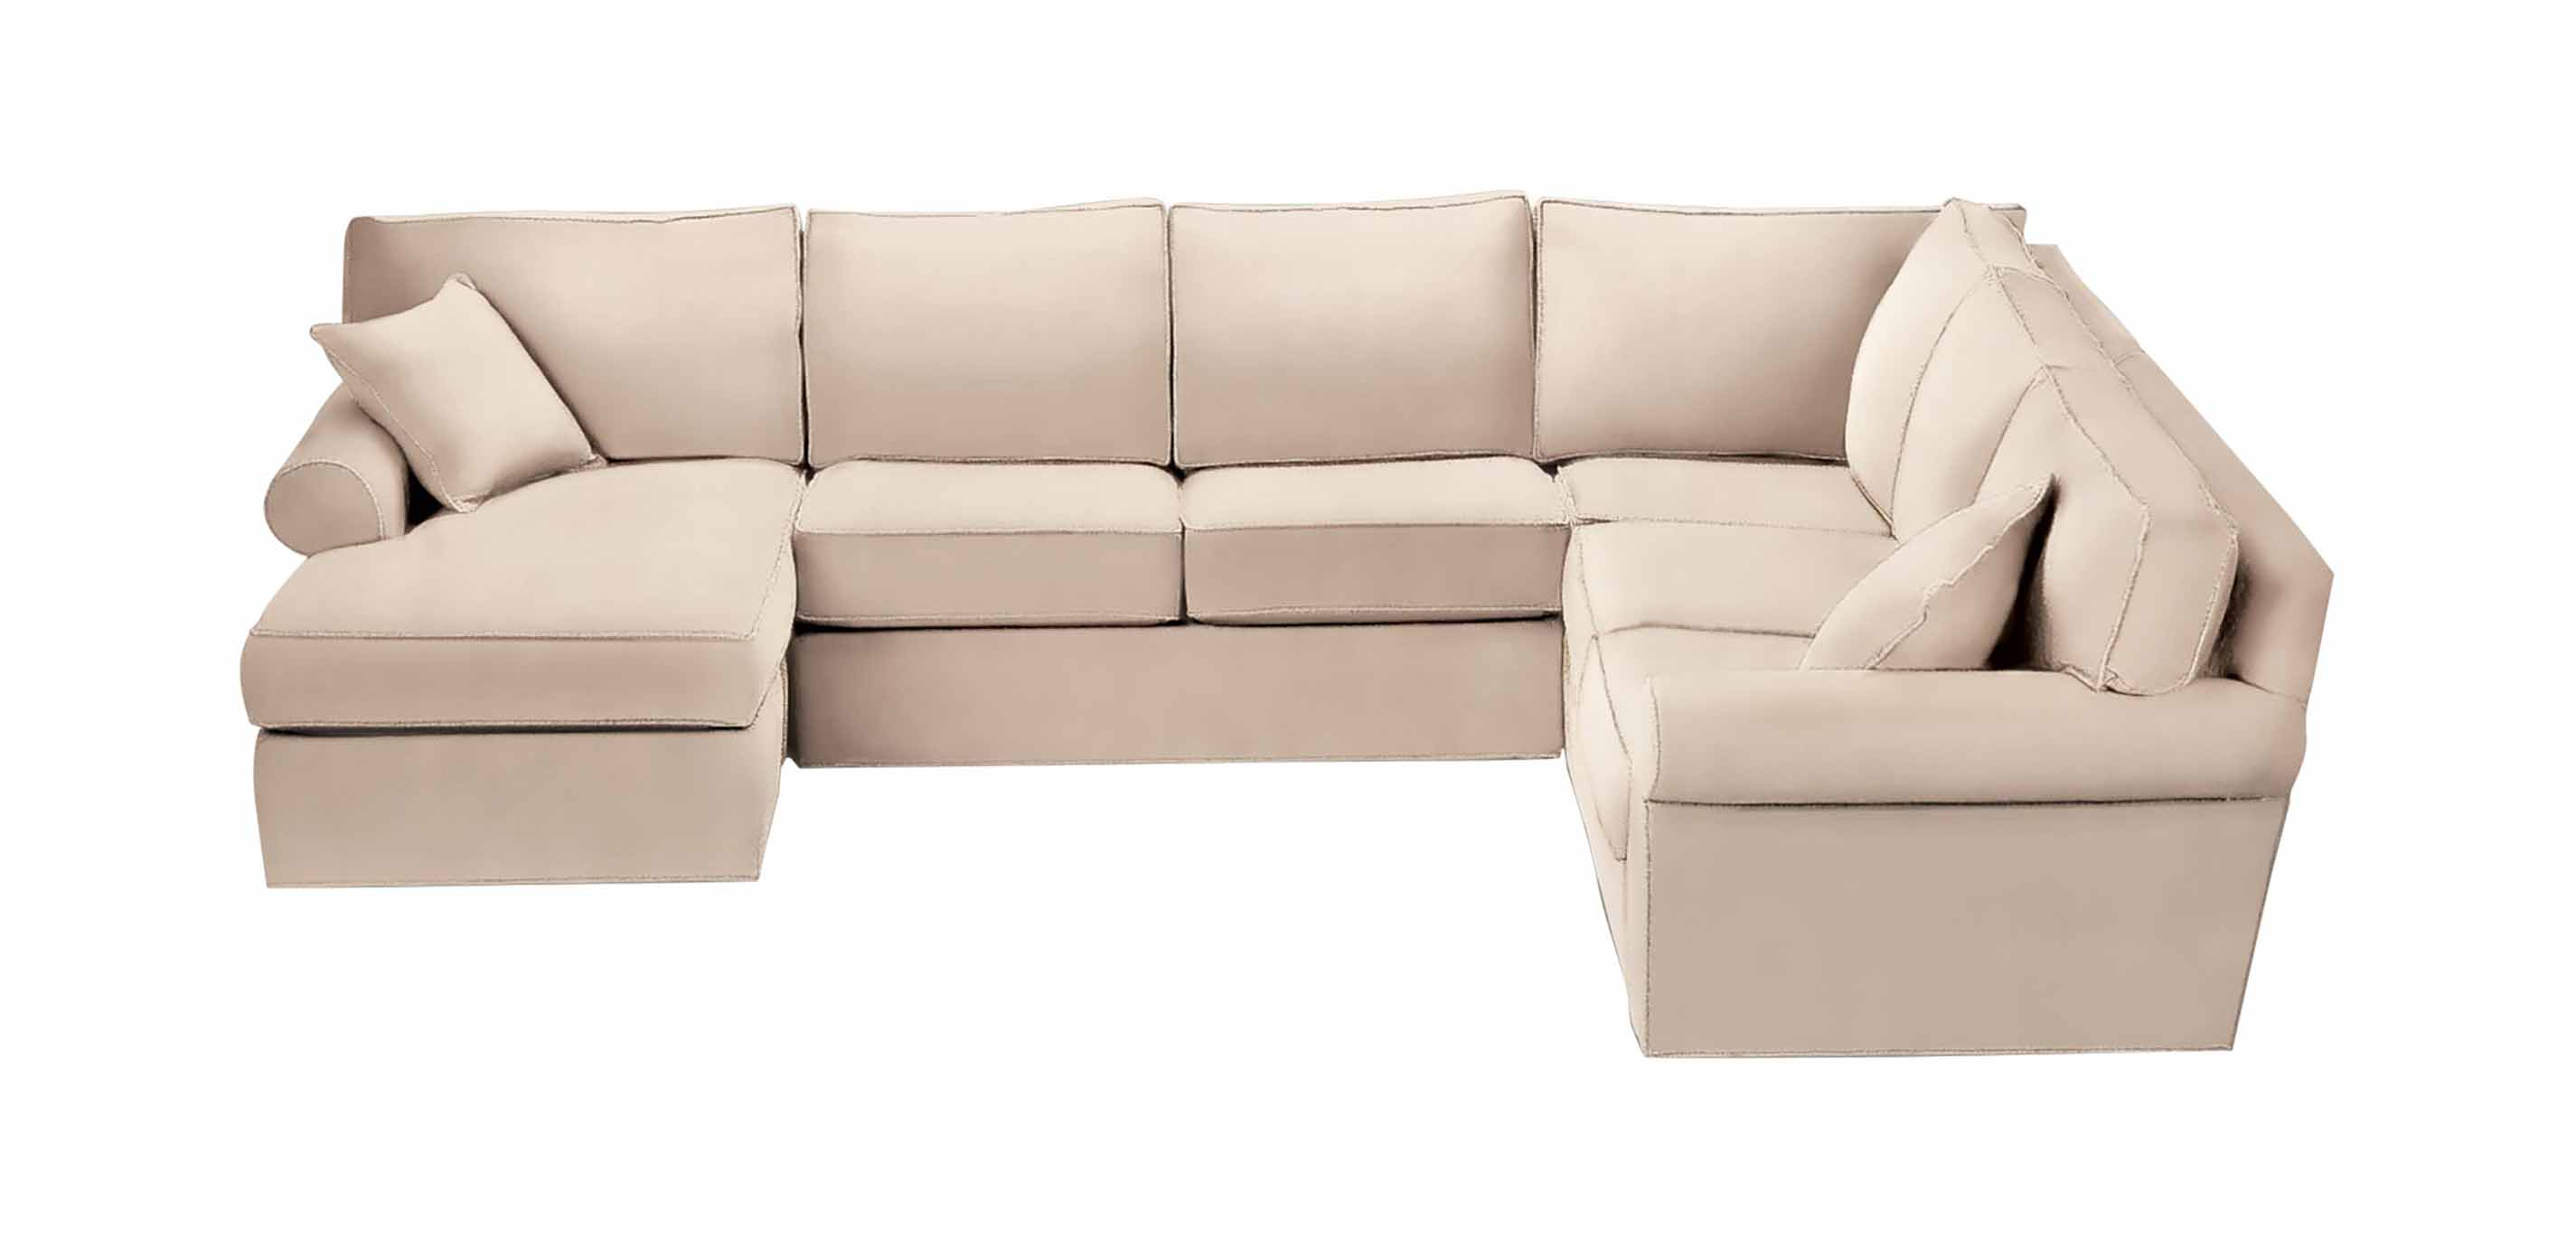 roll arm sofa canada striped sofas living room furniture retreat roll-arm sectional with chaise | sectionals